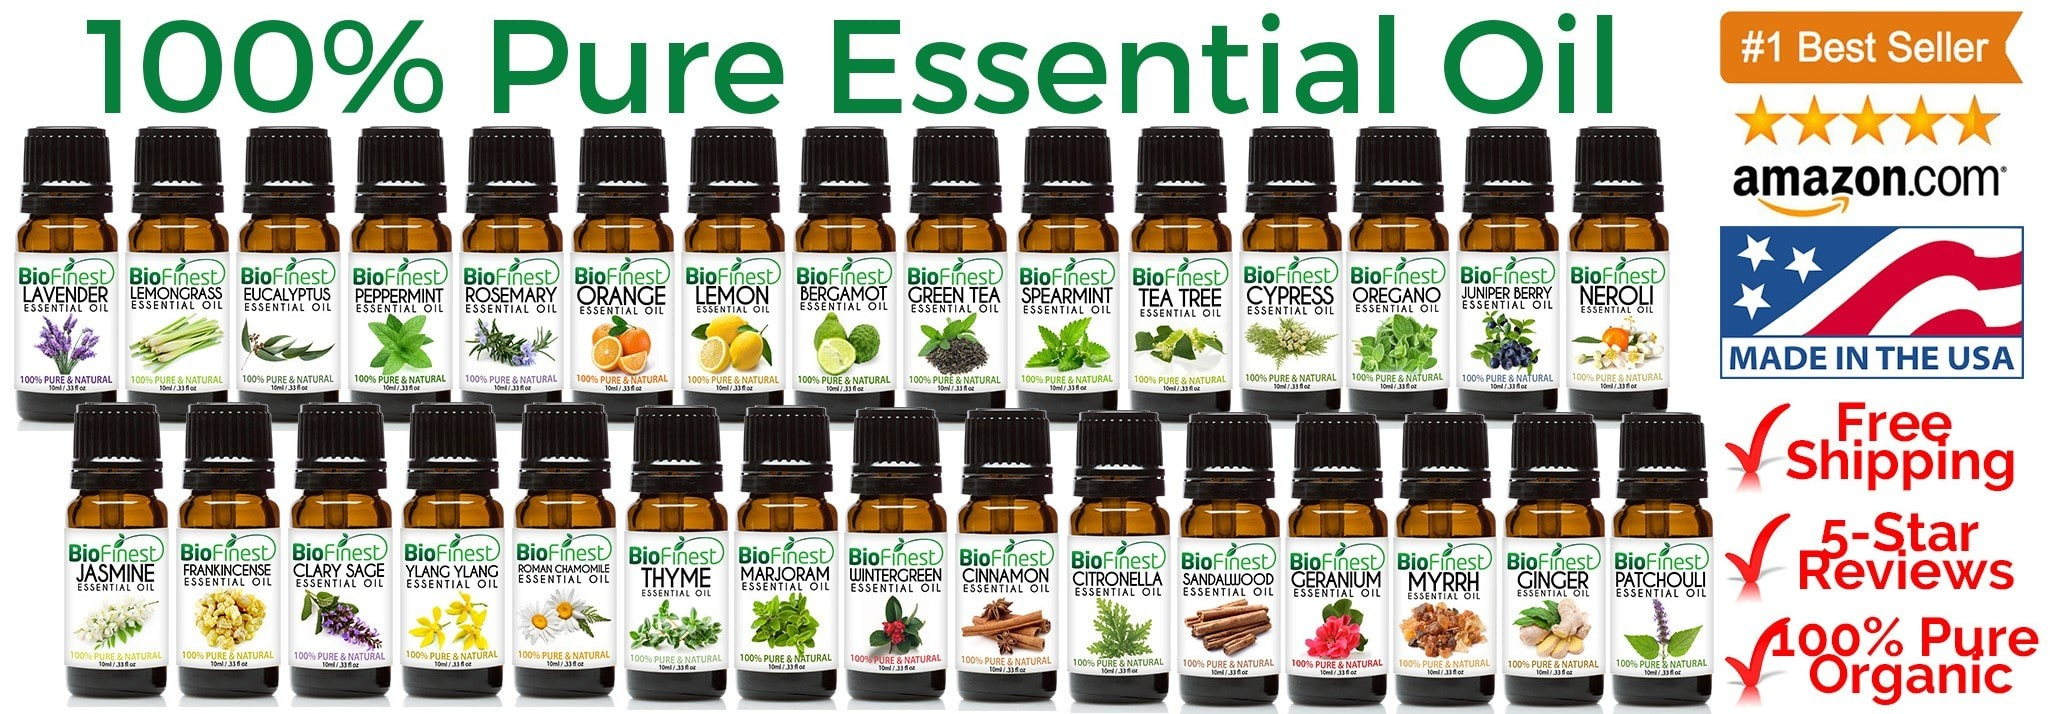 Biofinest 100% Pure Essential Oil (Available in 10ml and 100ml)